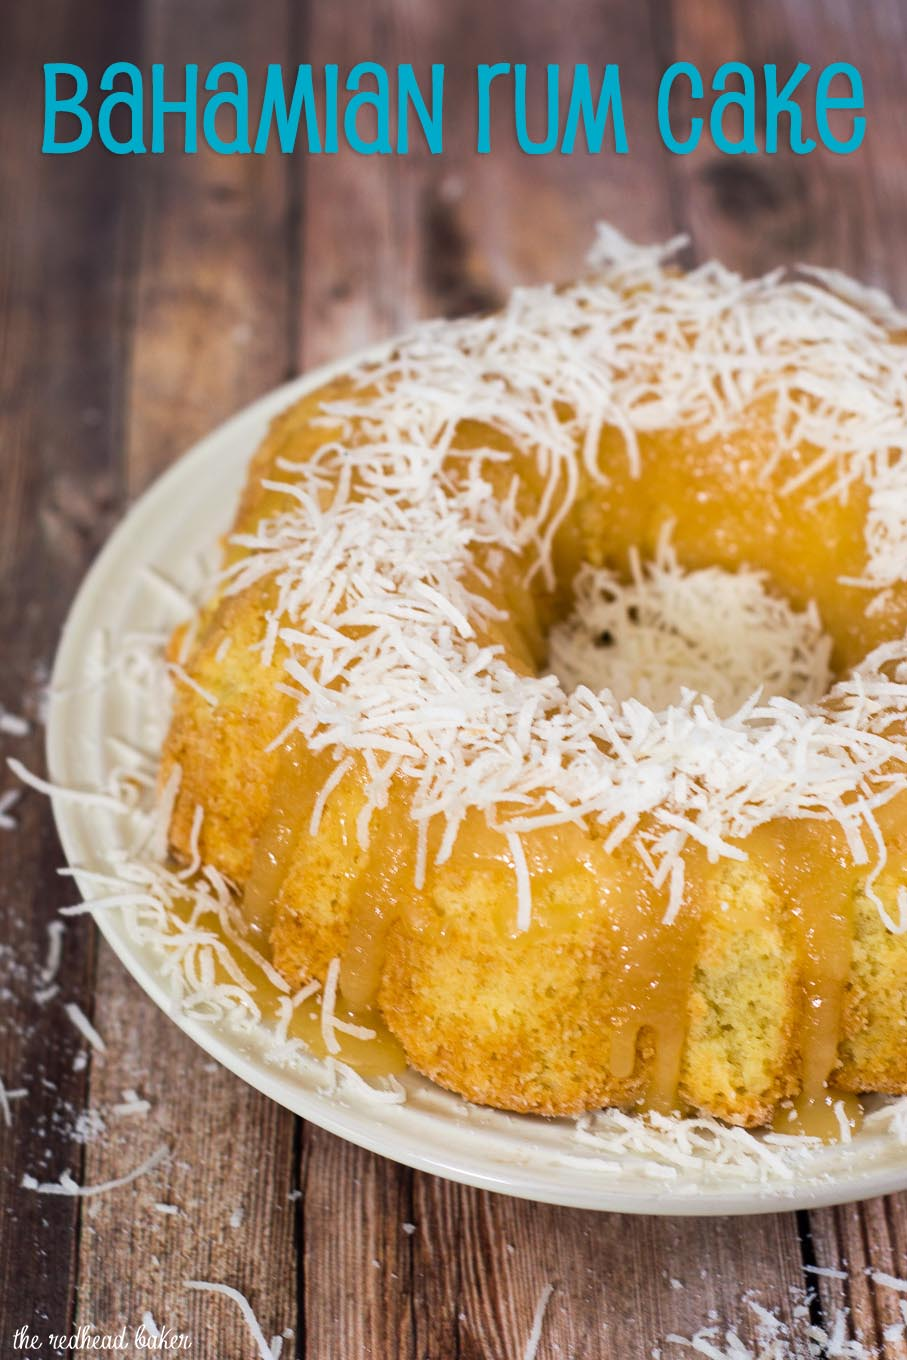 Since most of the world's rum is produced in the islands of the Caribbean, the liquor is found in many dishes native to The Bahamas. One of those is rum cake, a buttery treat with a strong rum flavor. #ProgressiveEats